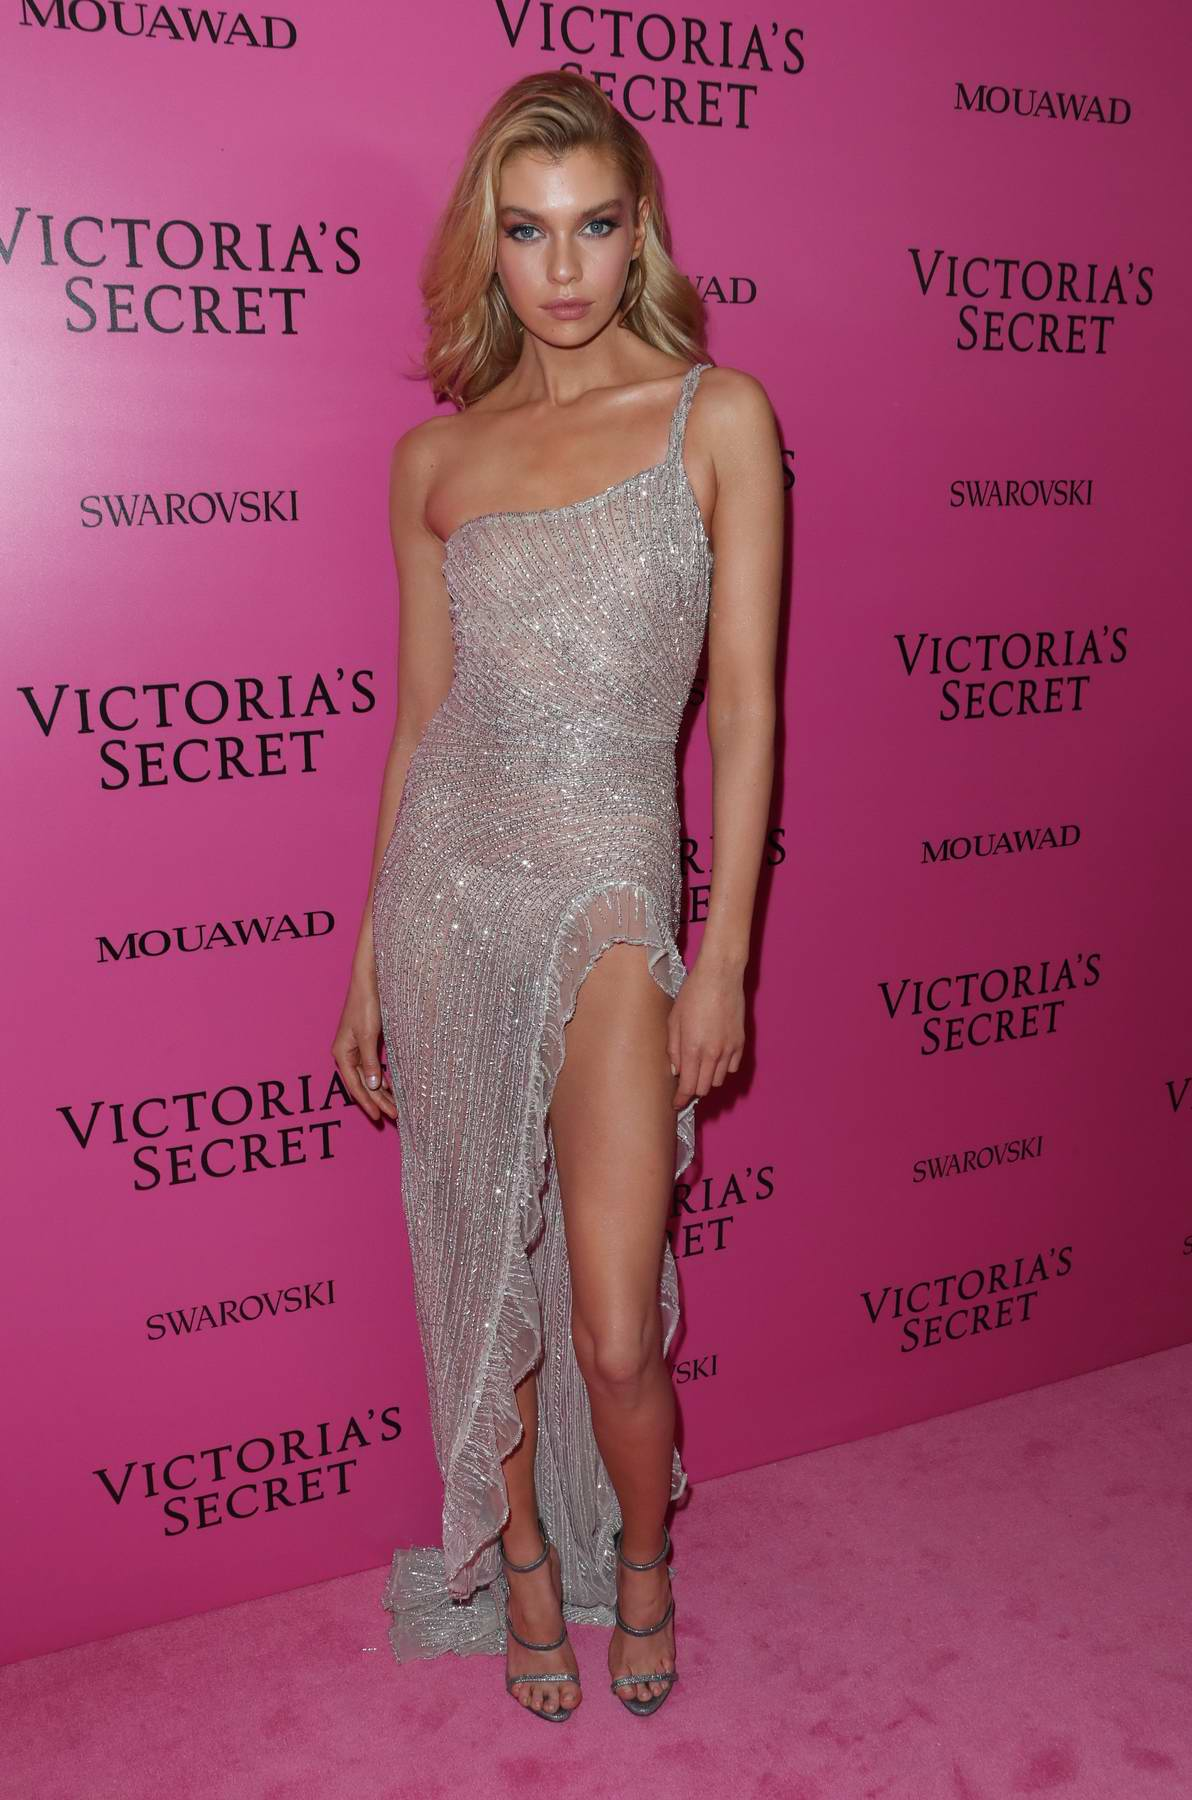 Stella Maxwell at the Victoria's Secret fashion show, pink carpet and after party at Expo Center in Shanghai, China